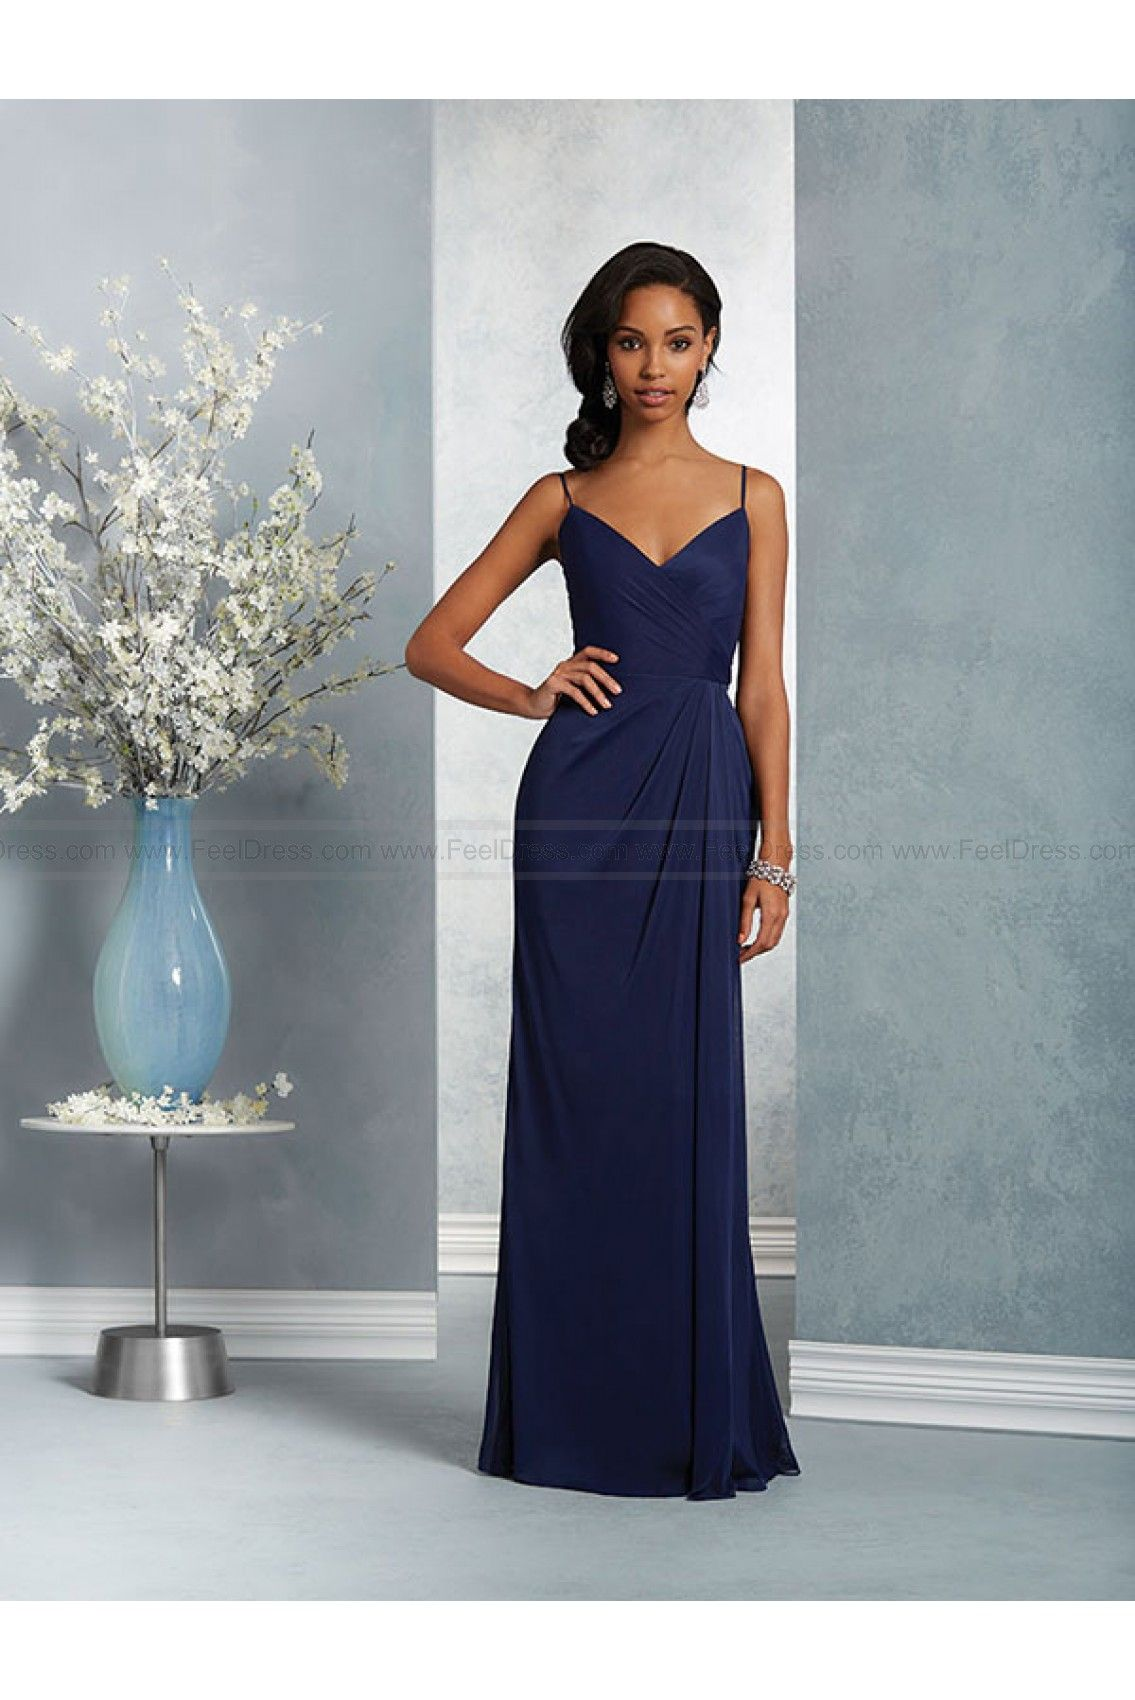 Alfred angelo bridesmaid dress style 7415 new alfred angelo alfred angelo bridesmaid dress style 7415 new ombrellifo Image collections